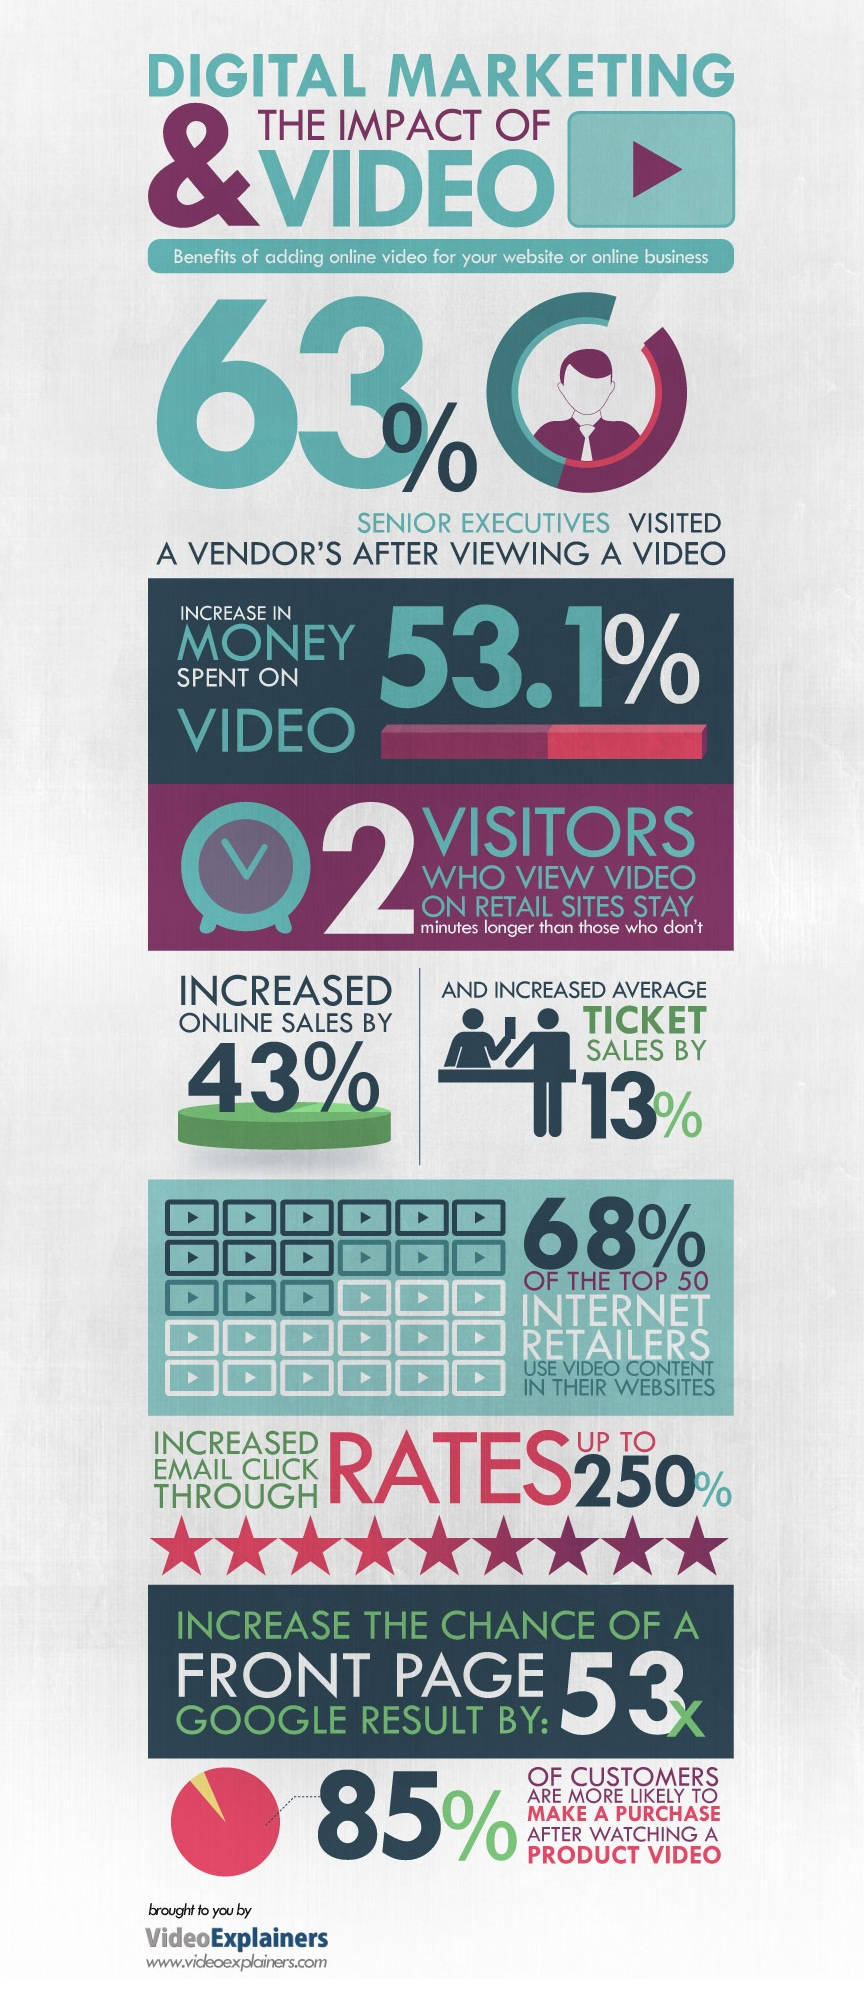 http://mediacaffeine.com/the-impact-of-video-on-digital-marketing-infographic/